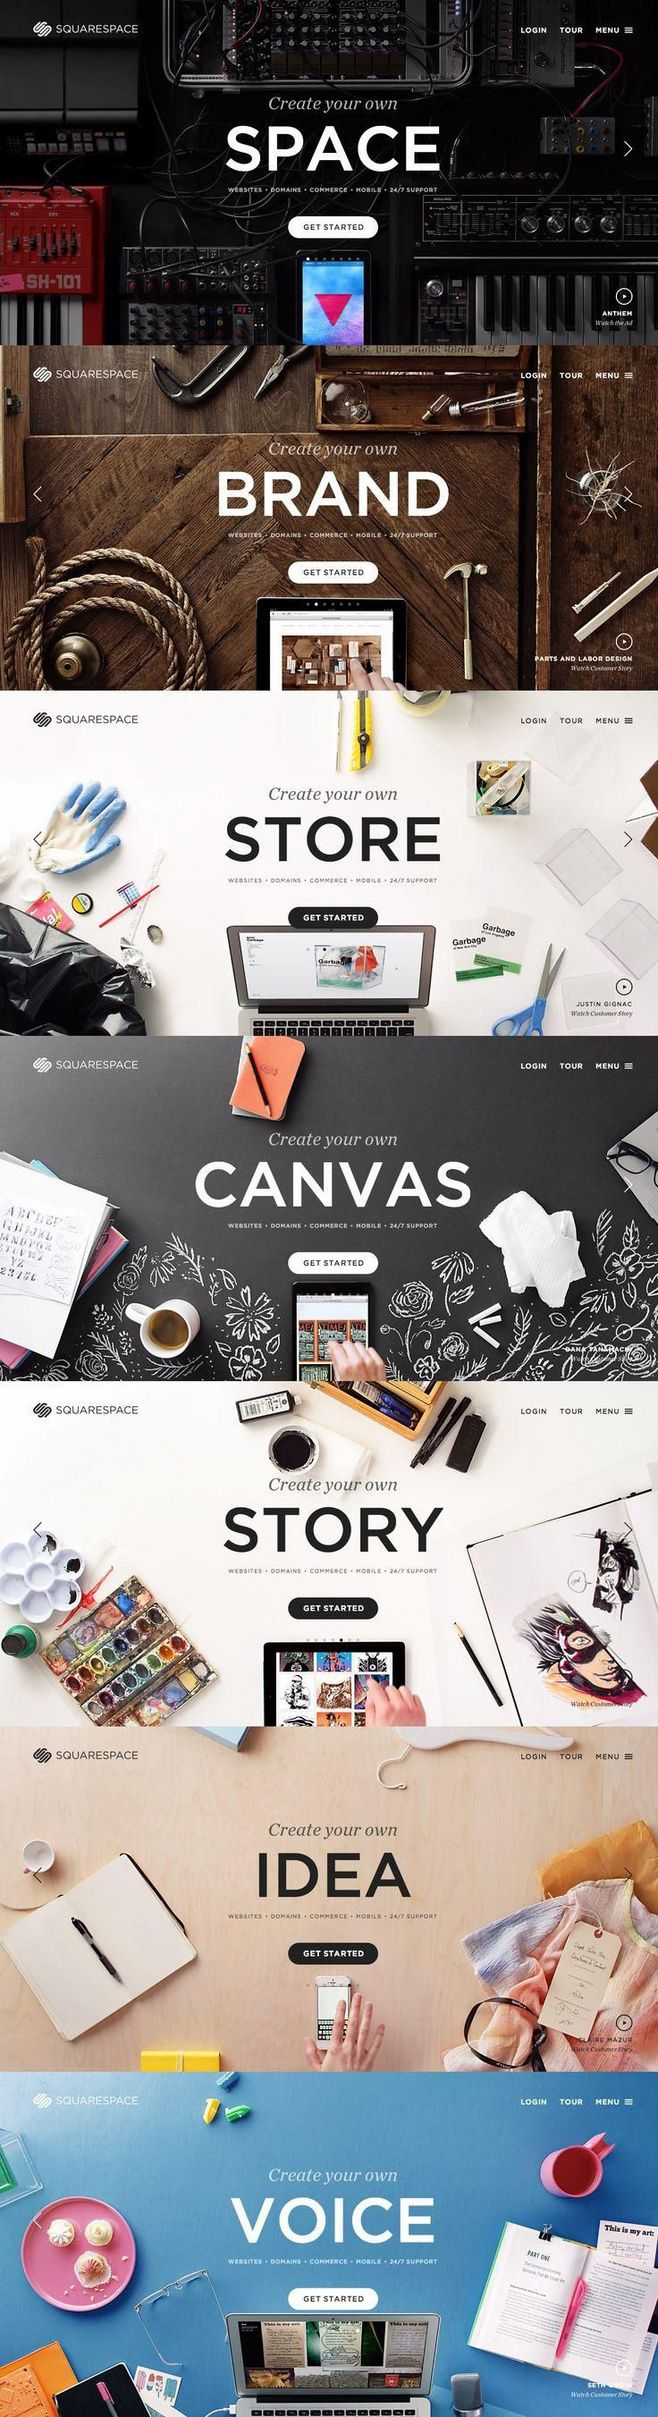 Although it only show the homepage, I like the various different layouts and how it's centered around the focal word. Each layout has a balanced composition as well as a specific color palette. It also gives you different type of moods that demonstrate the kind of website that you might want to promote.